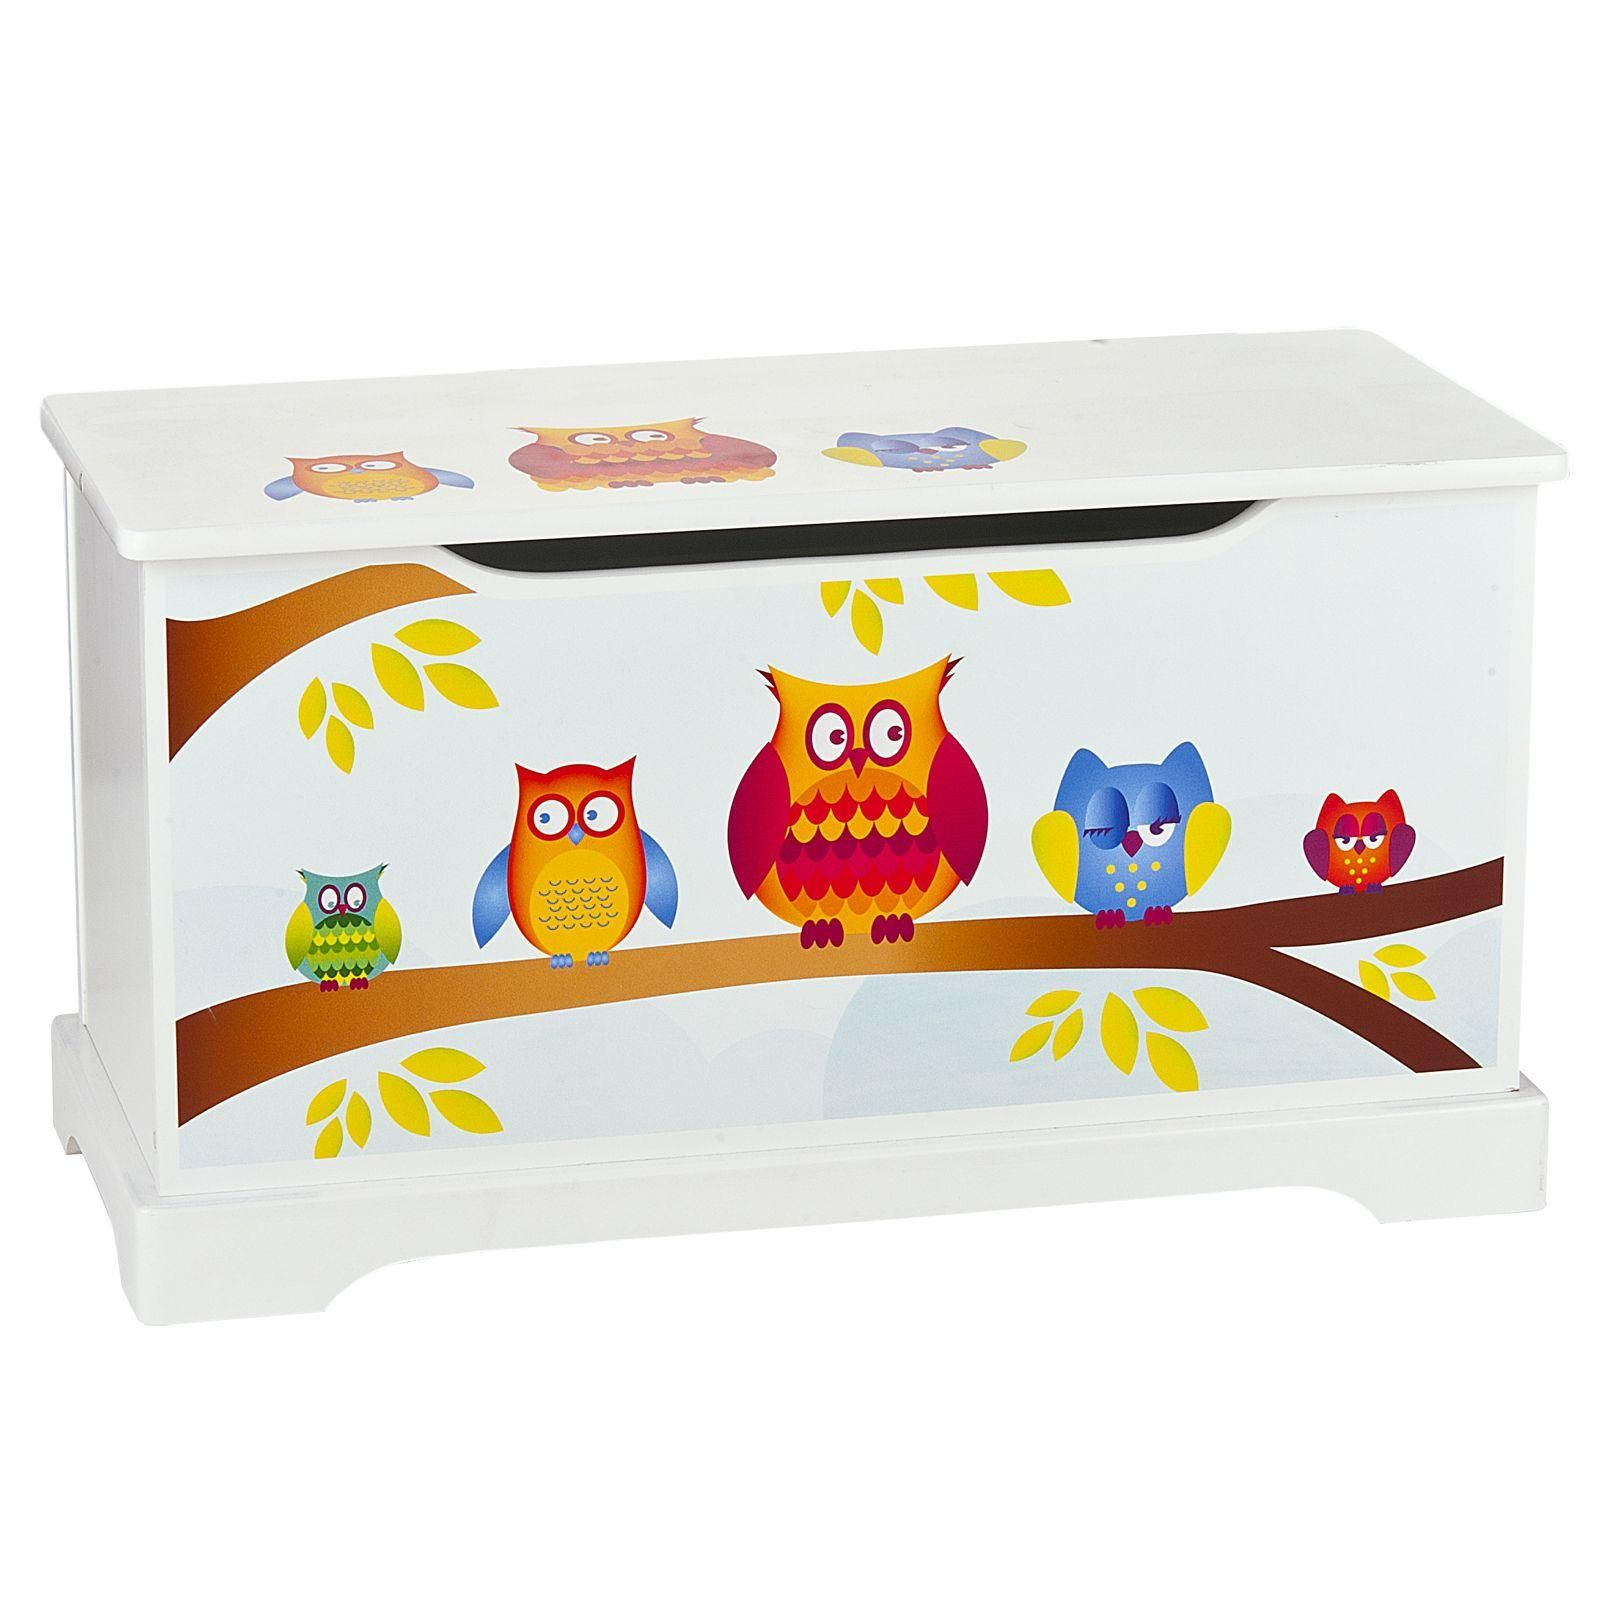 Childrens wooden furniture tables chairs toy boxes owls jungle animals ebay Wooden childrens furniture